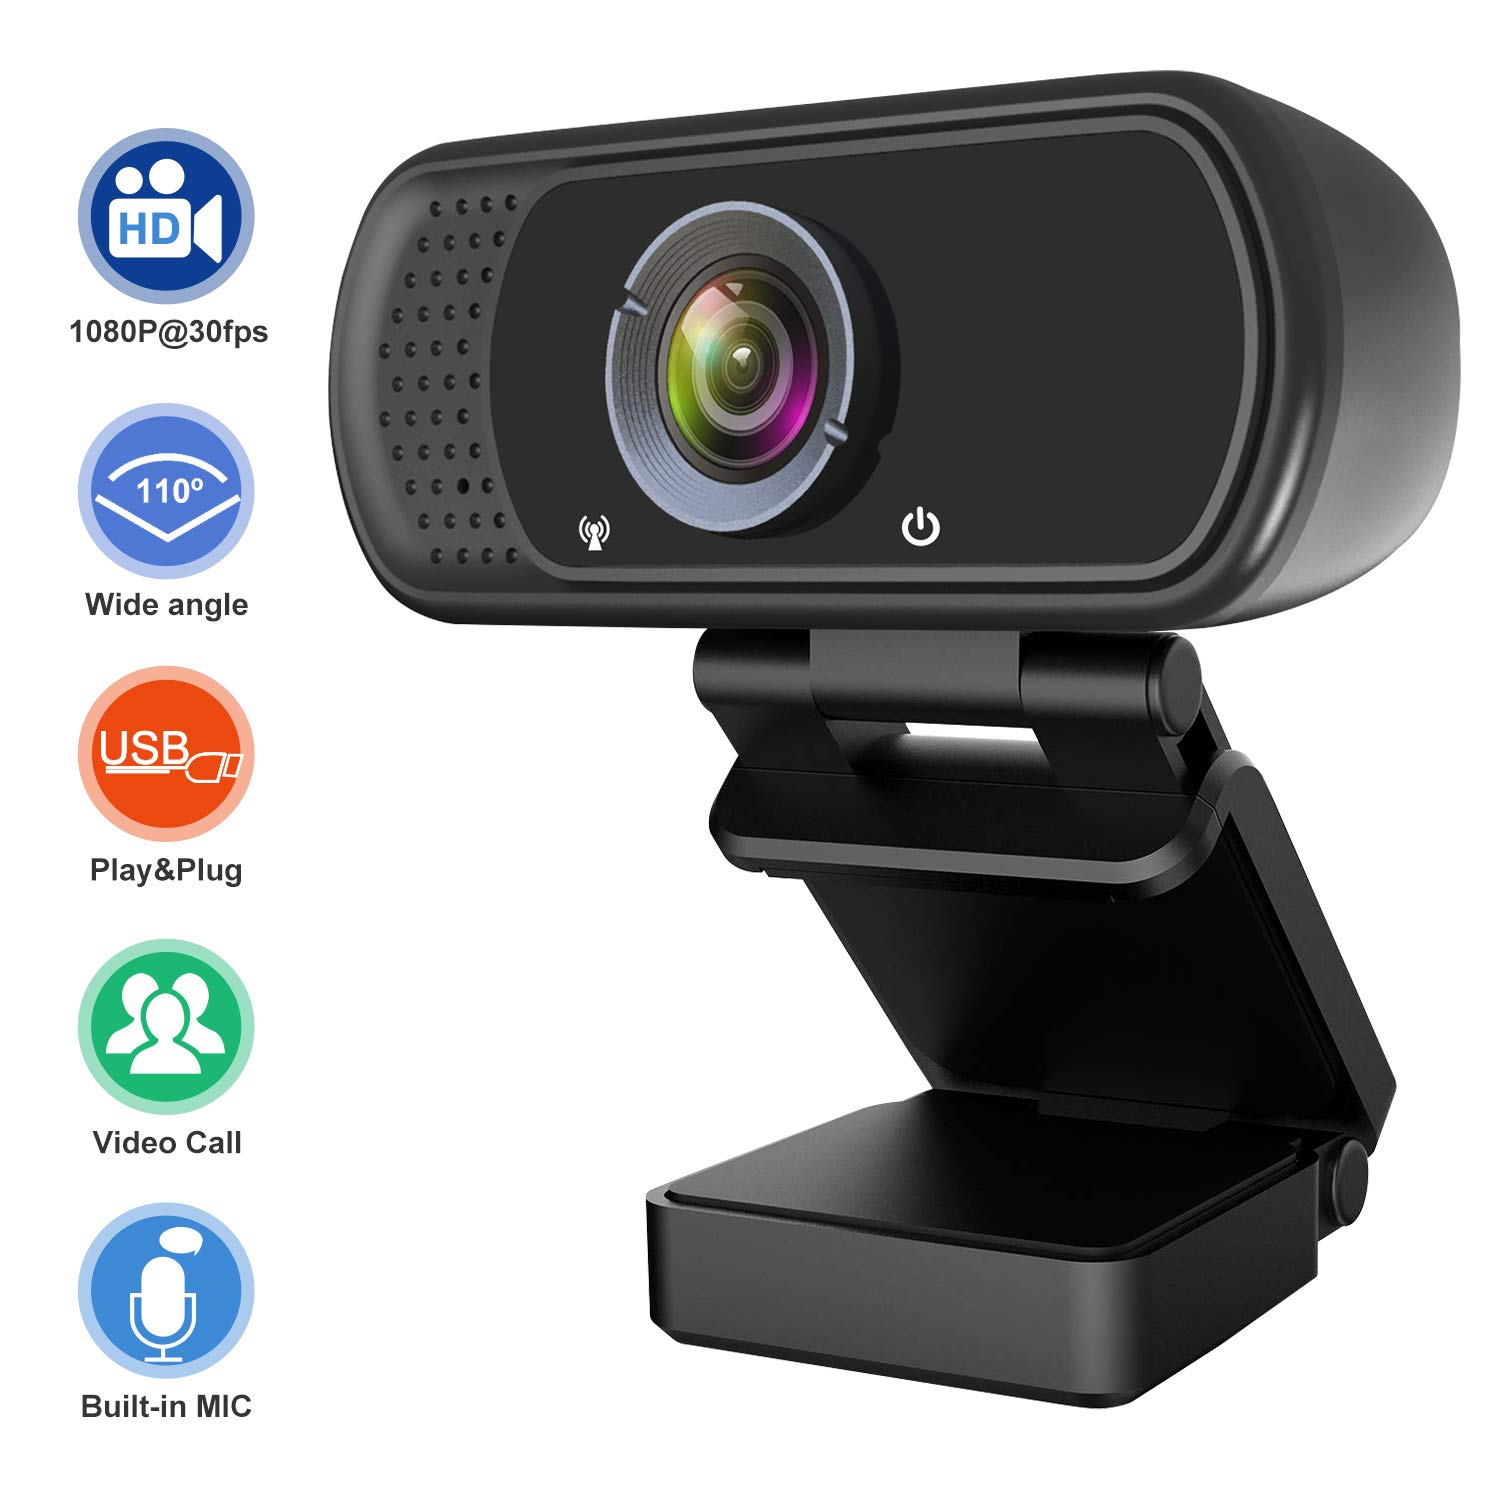 1080P Webcam, Hrayzan Live Streaming Computer Web Camera with Stereo Microphone, Desktop or Laptop USB Webcam with 110-Degree View Angle, HD Webcam for Video Calling Recording Conferencing by Hrayzan